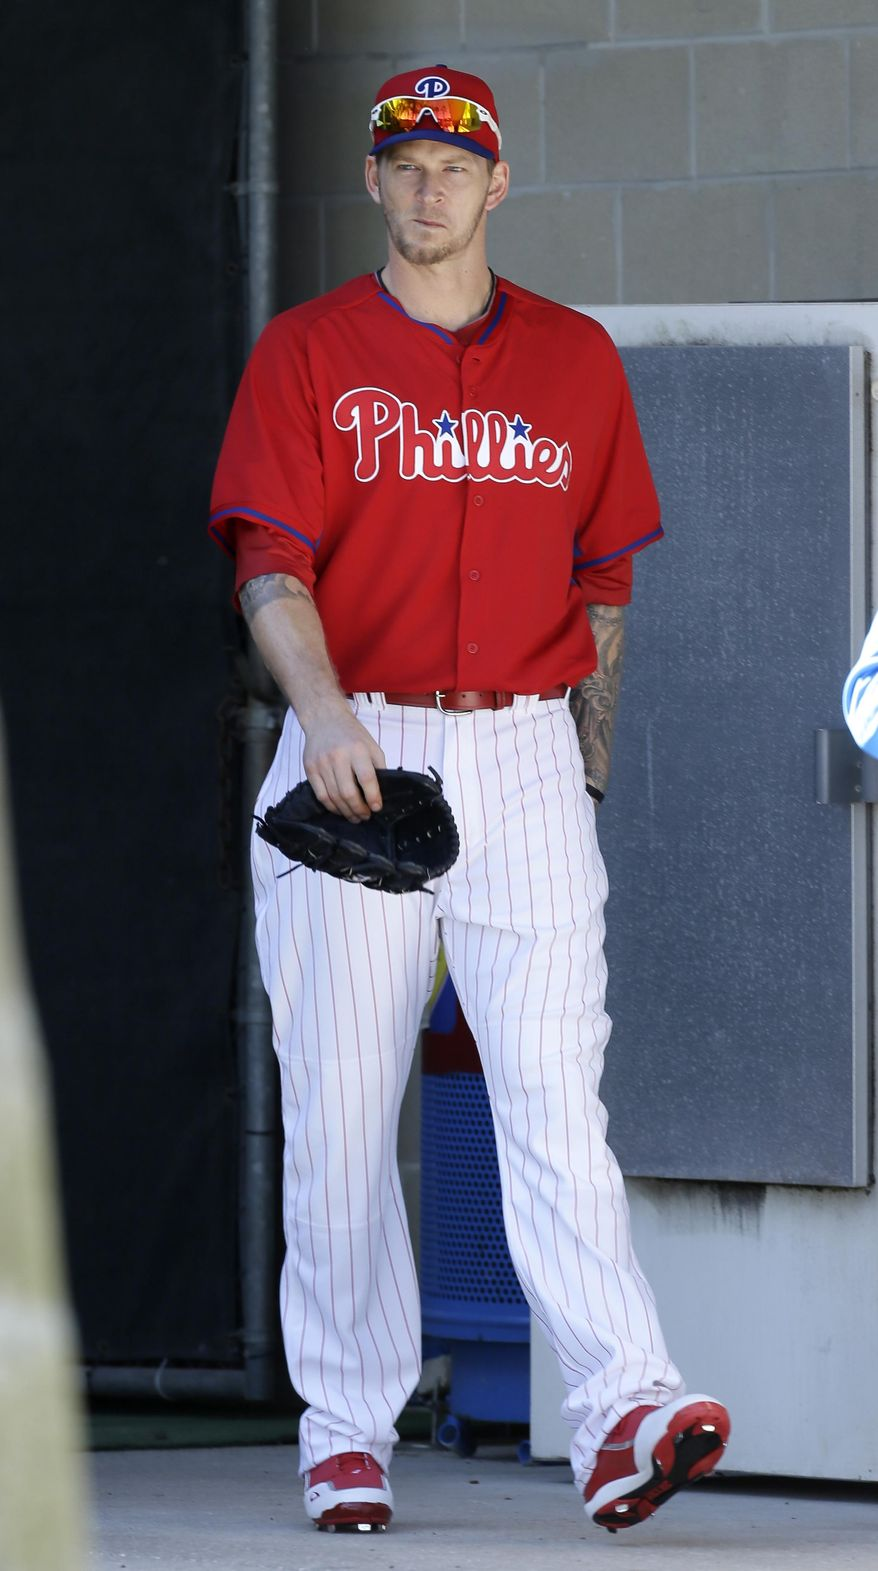 Philadelphia Phillies pitcher A.J. Burnett walks to the field before a spring training baseball practice Sunday, Feb. 16, 2014, in Clearwater, Fla. (AP Photo/Charlie Neibergall)